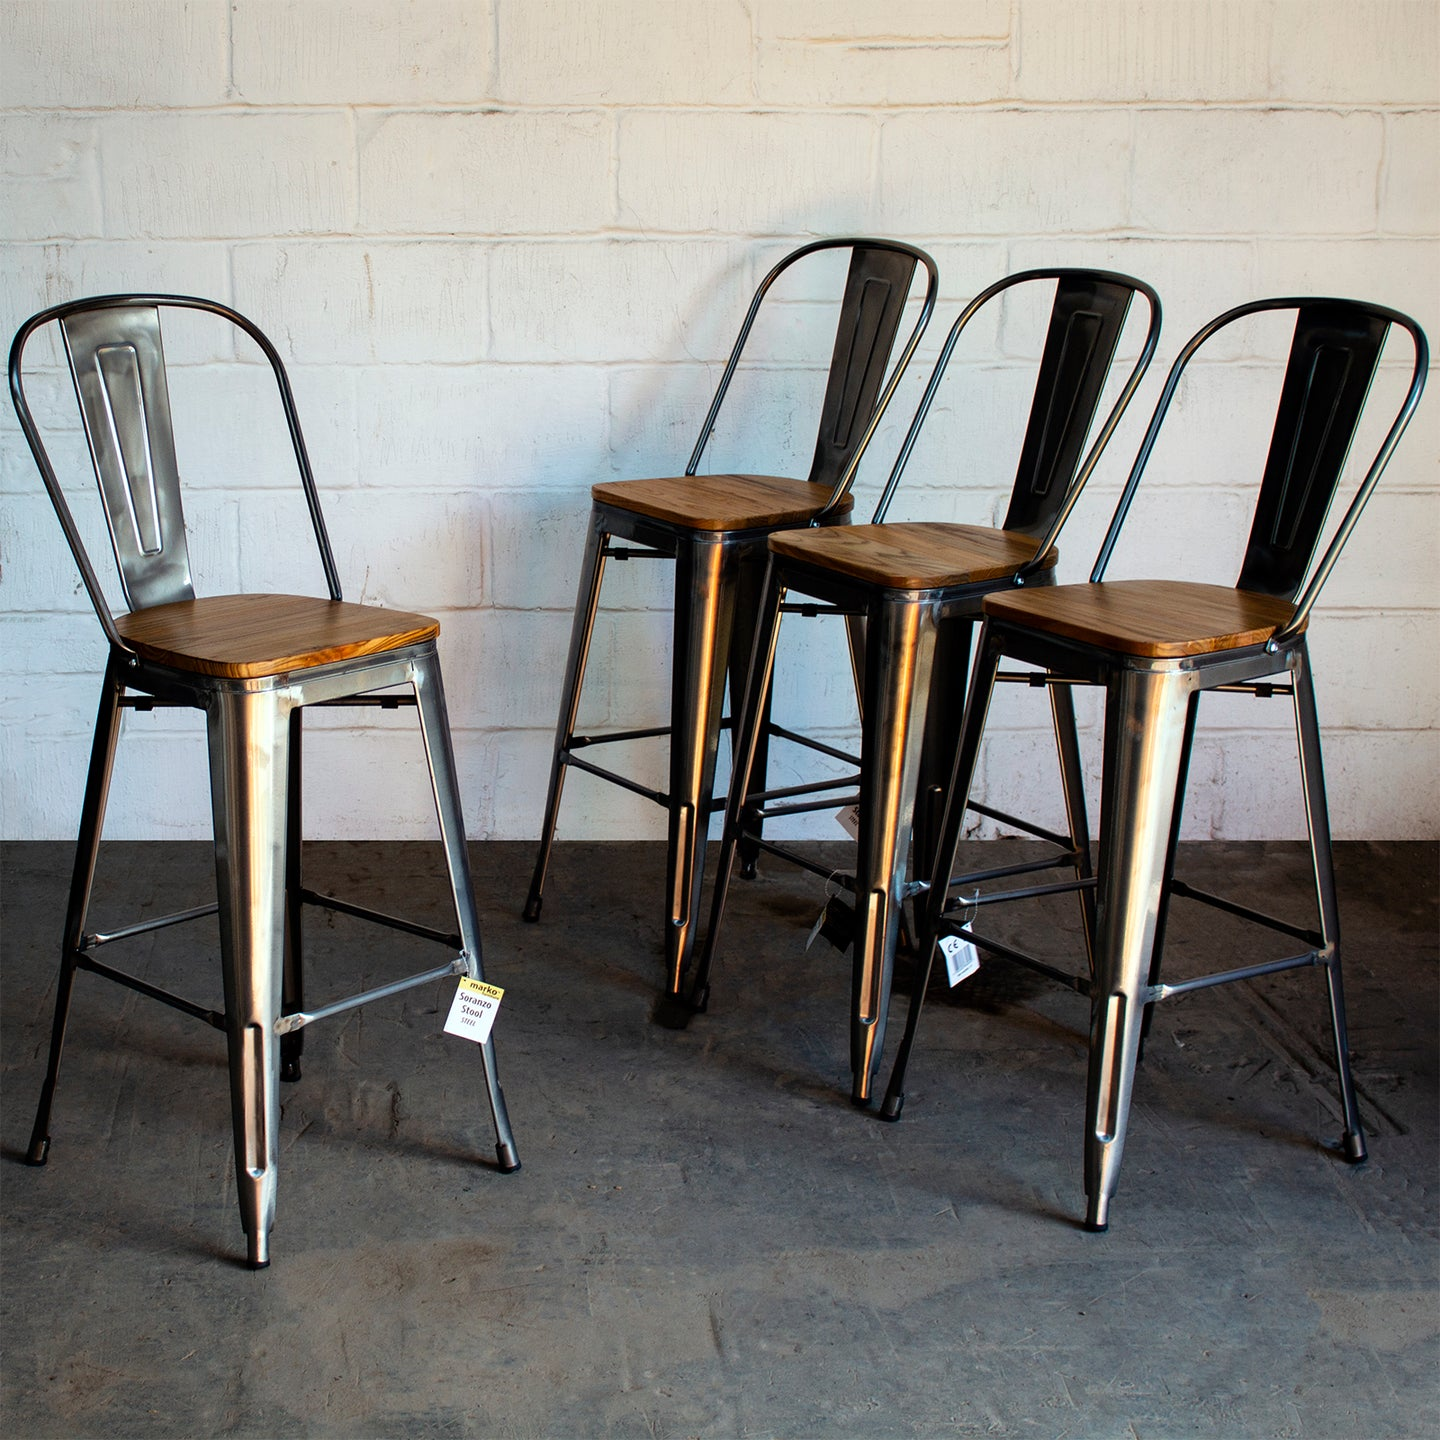 Soranzo Bar Stool - Steel